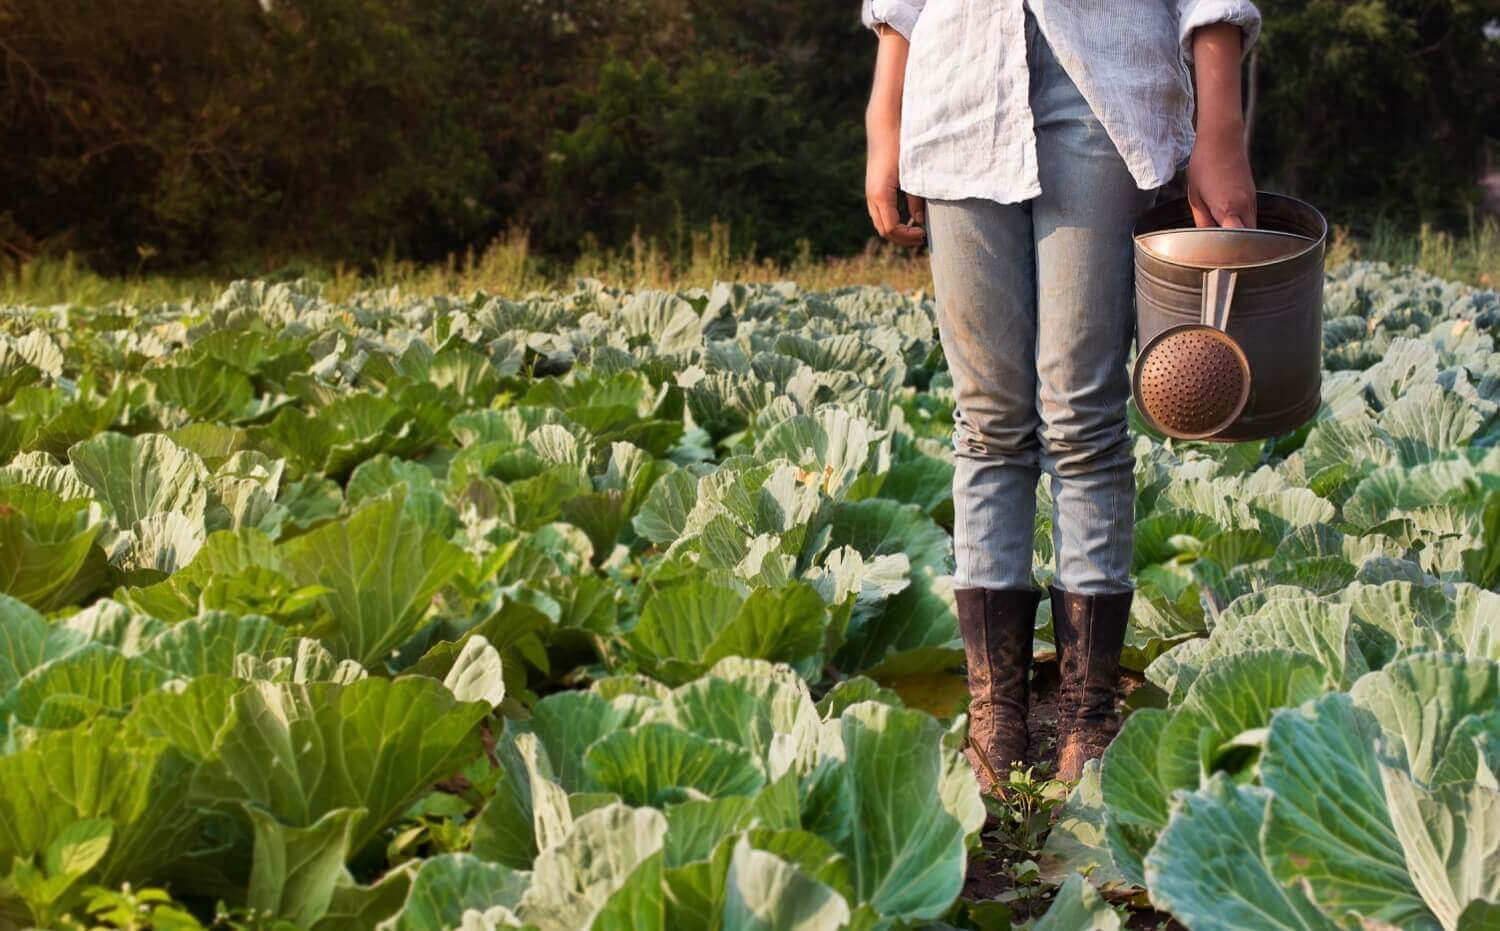 We believe that food is the single strongest lever to optimise human health and environmental sustainability on Earth.